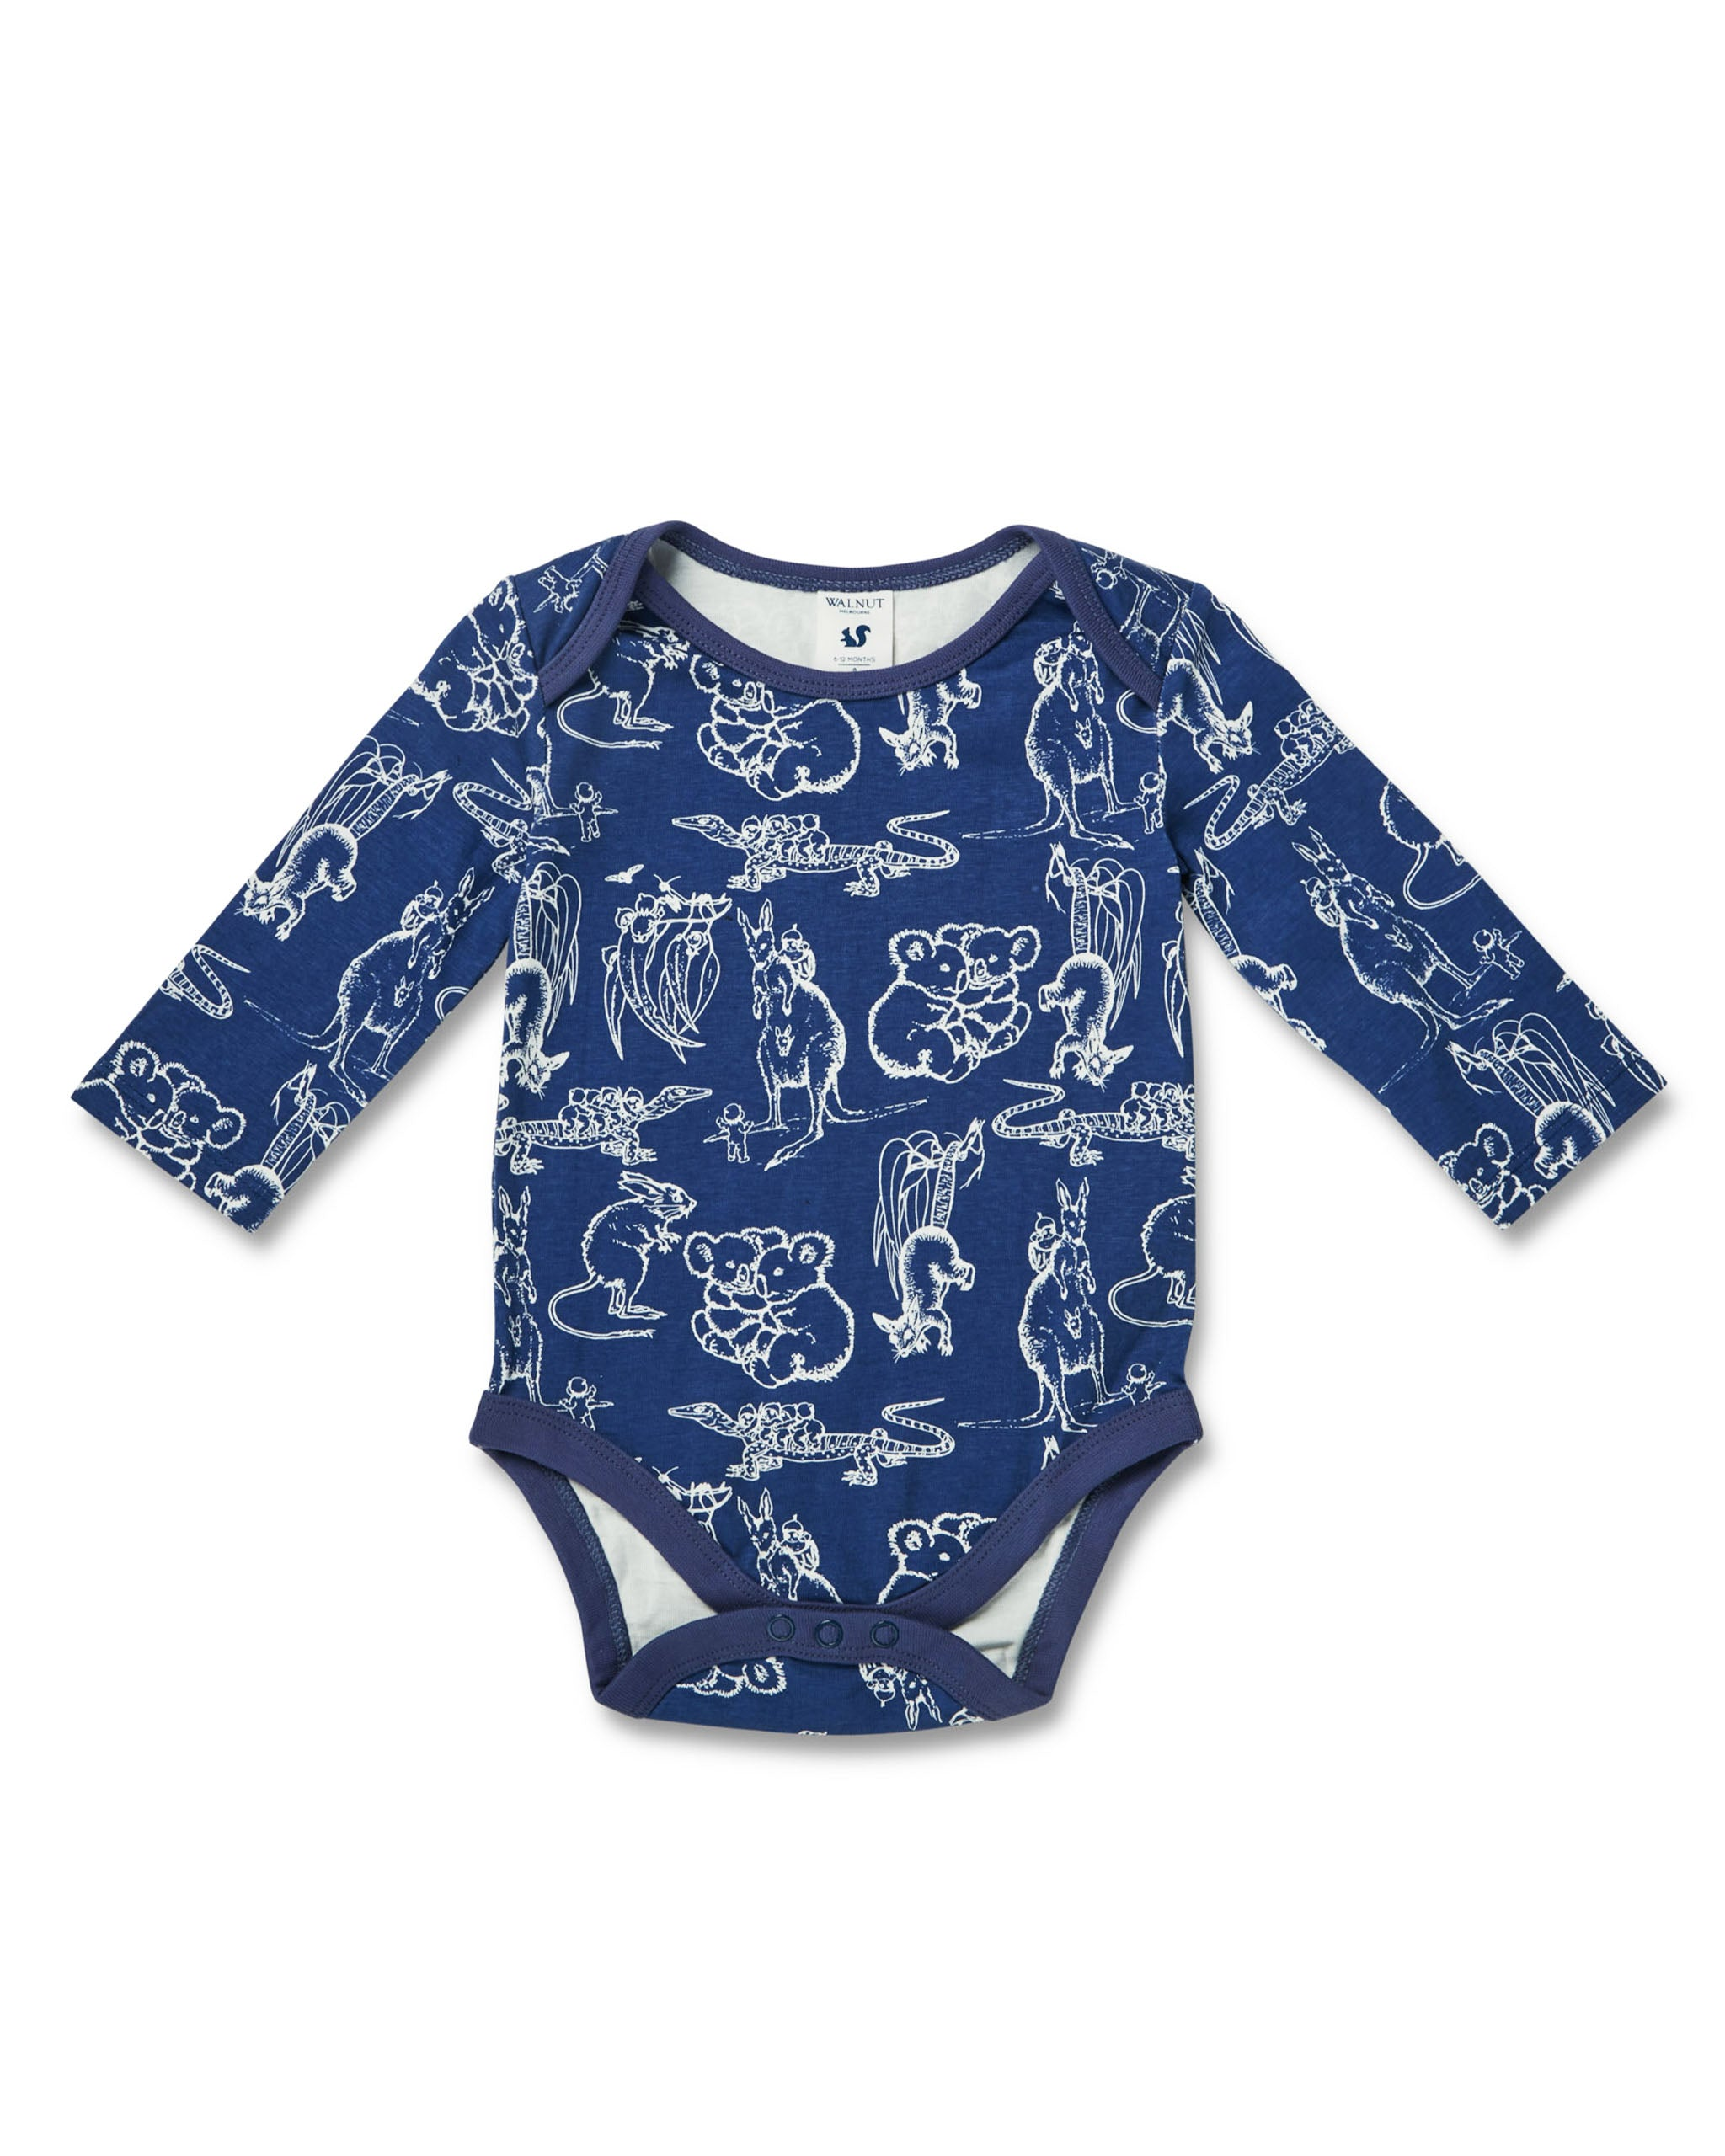 May Gibbs Winter Onesie - Bush Buddies